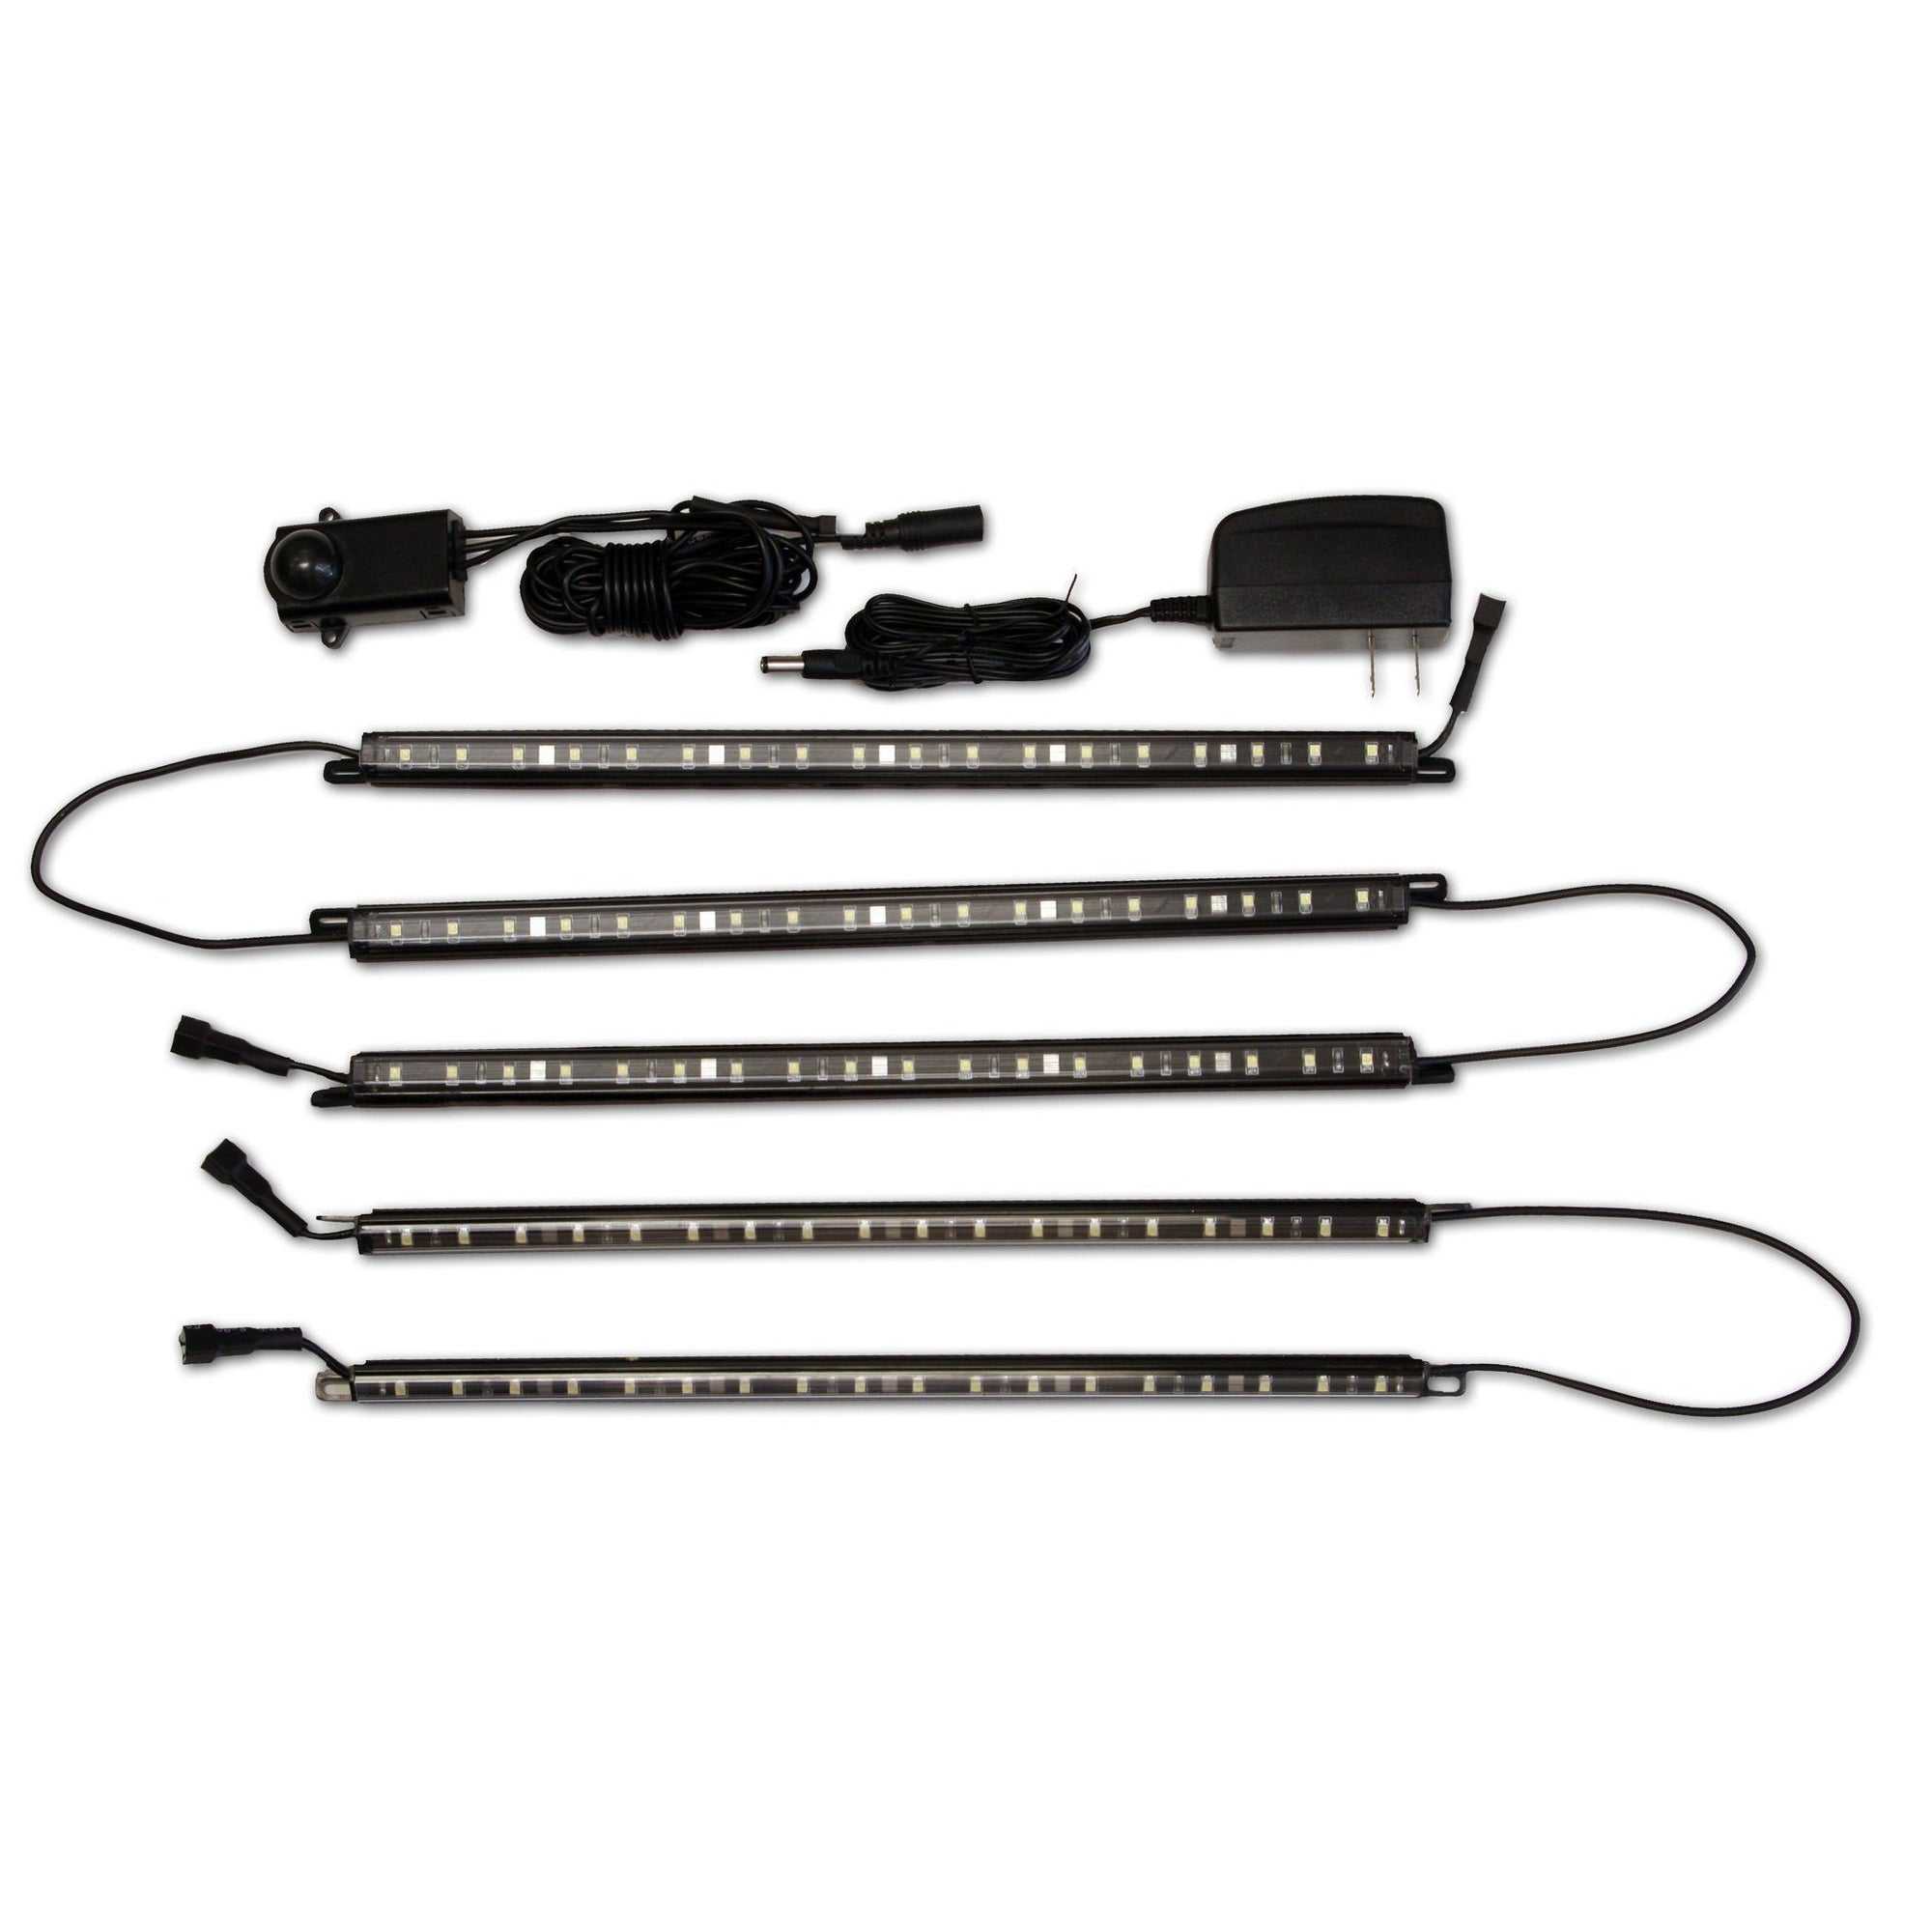 Liberty Safe-accessory-lights-clearview-safe-light-kit-5-wand-lights